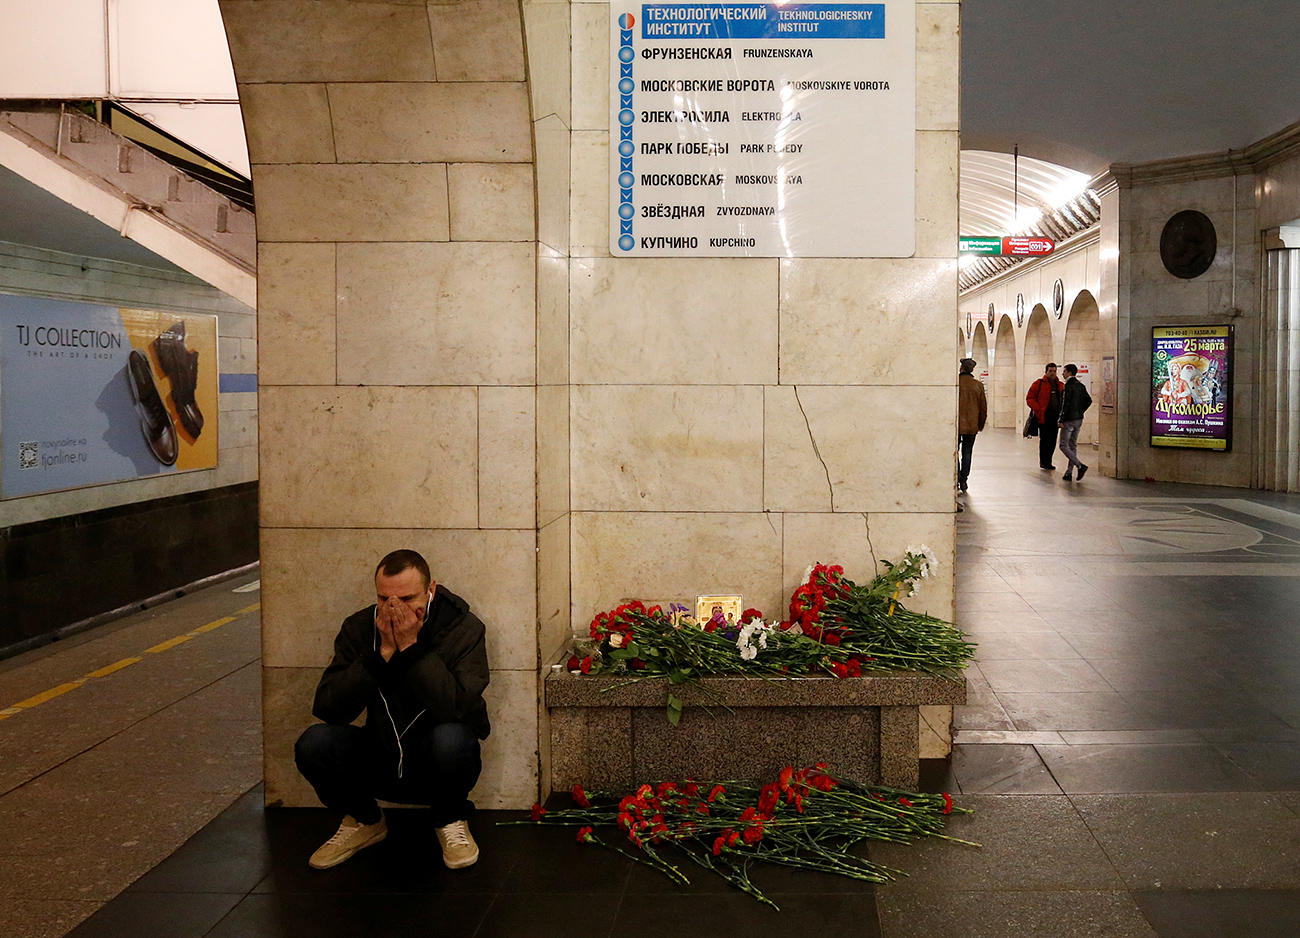 A man reacts next to a memorial site for the victims of a blast in St. Petersburg metro, at Tekhnologicheskiy institut metro station in St. Petersburg, April 4, 2017.